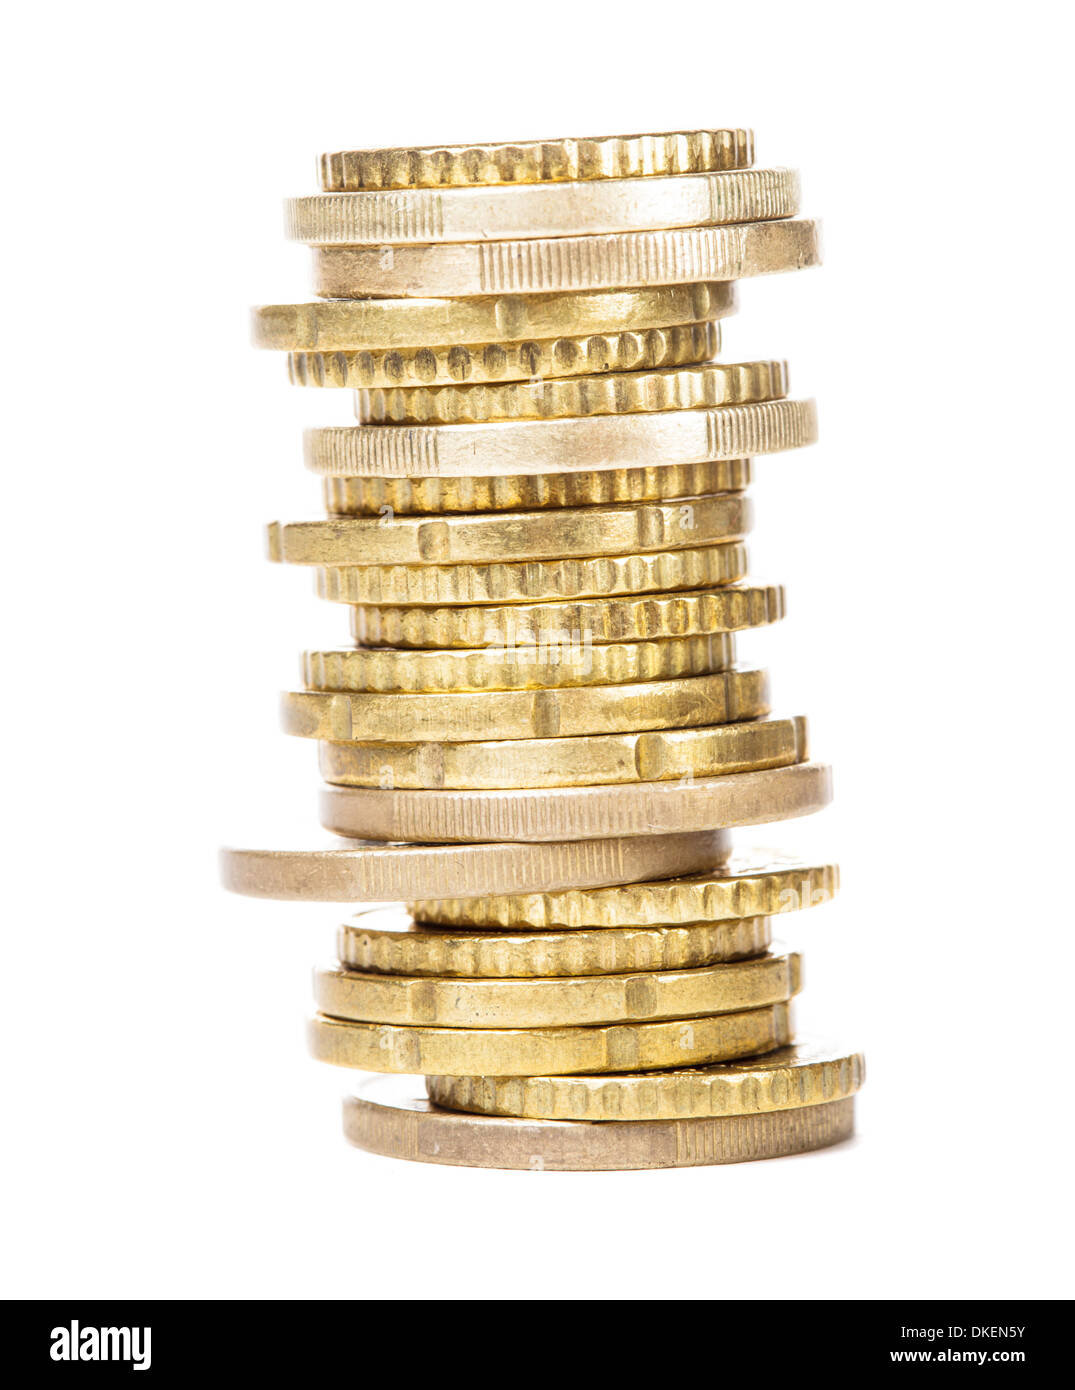 The tower of golden coins isolated on white - Stock Image